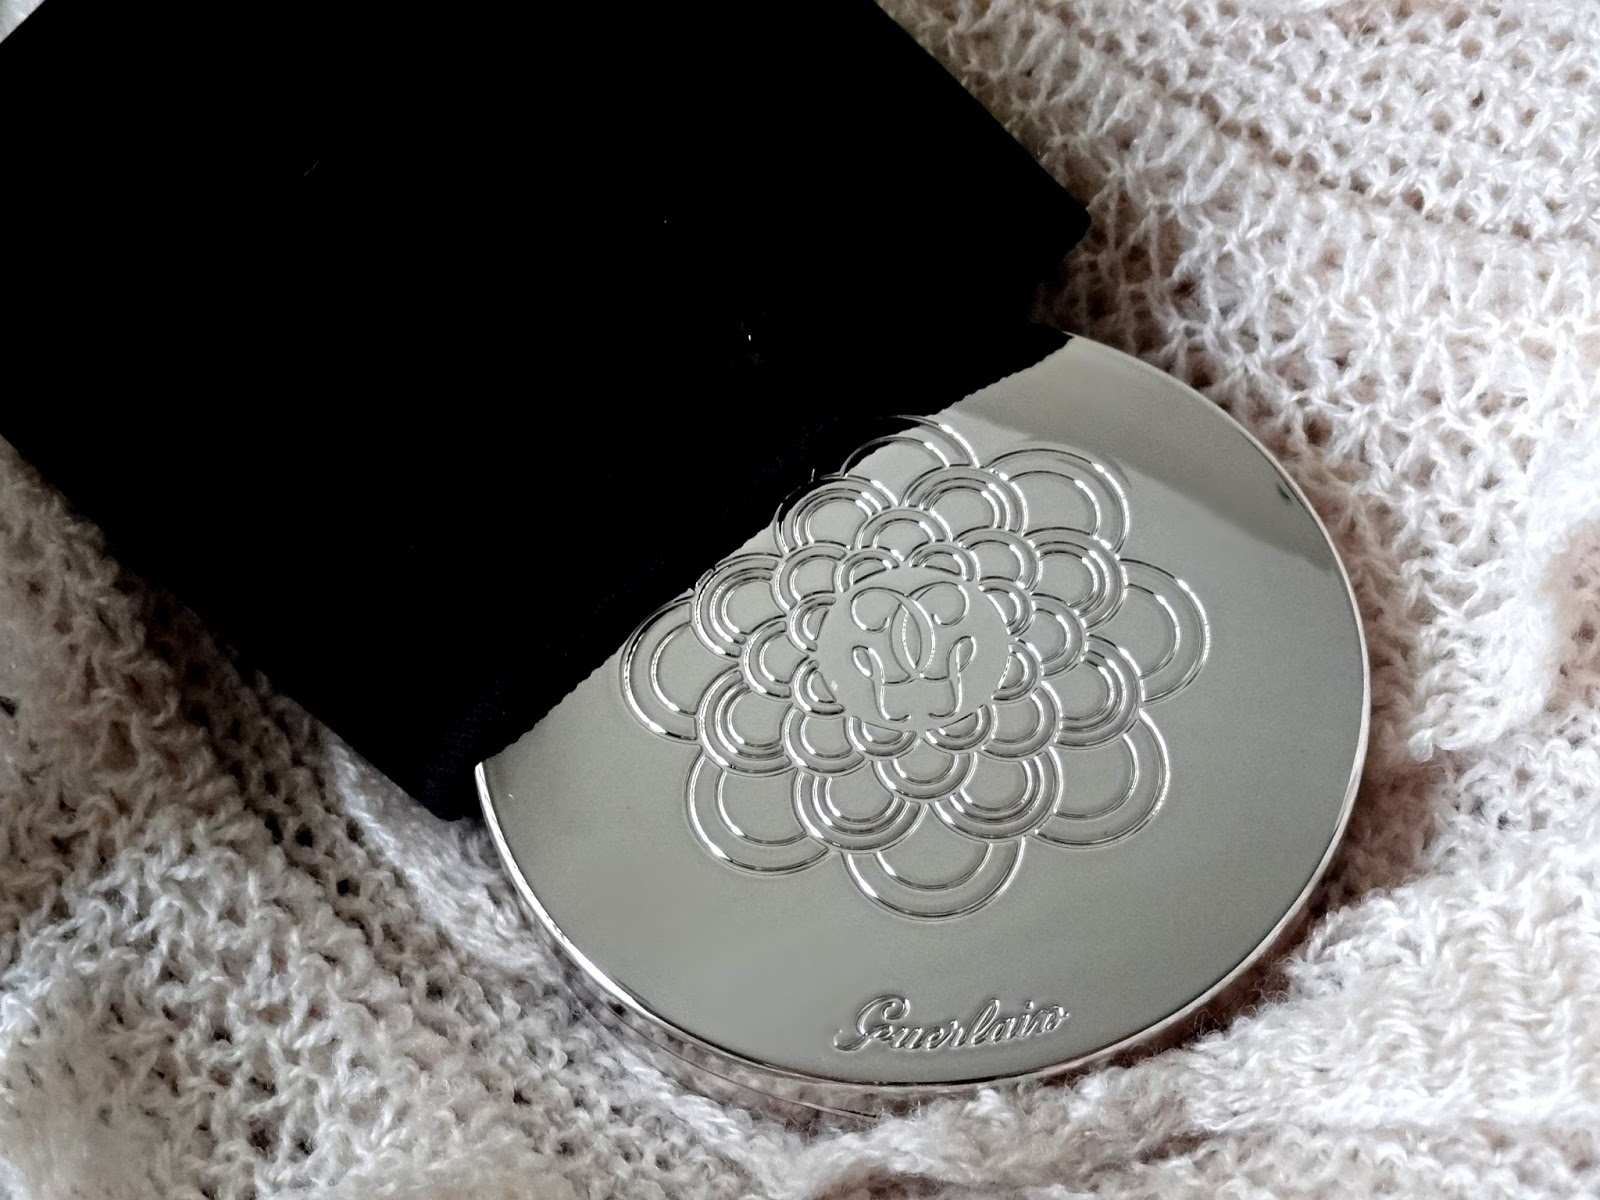 Guerlain Meteorites Compact Medium 03 Guerlain les Tendres spring 2015 collection